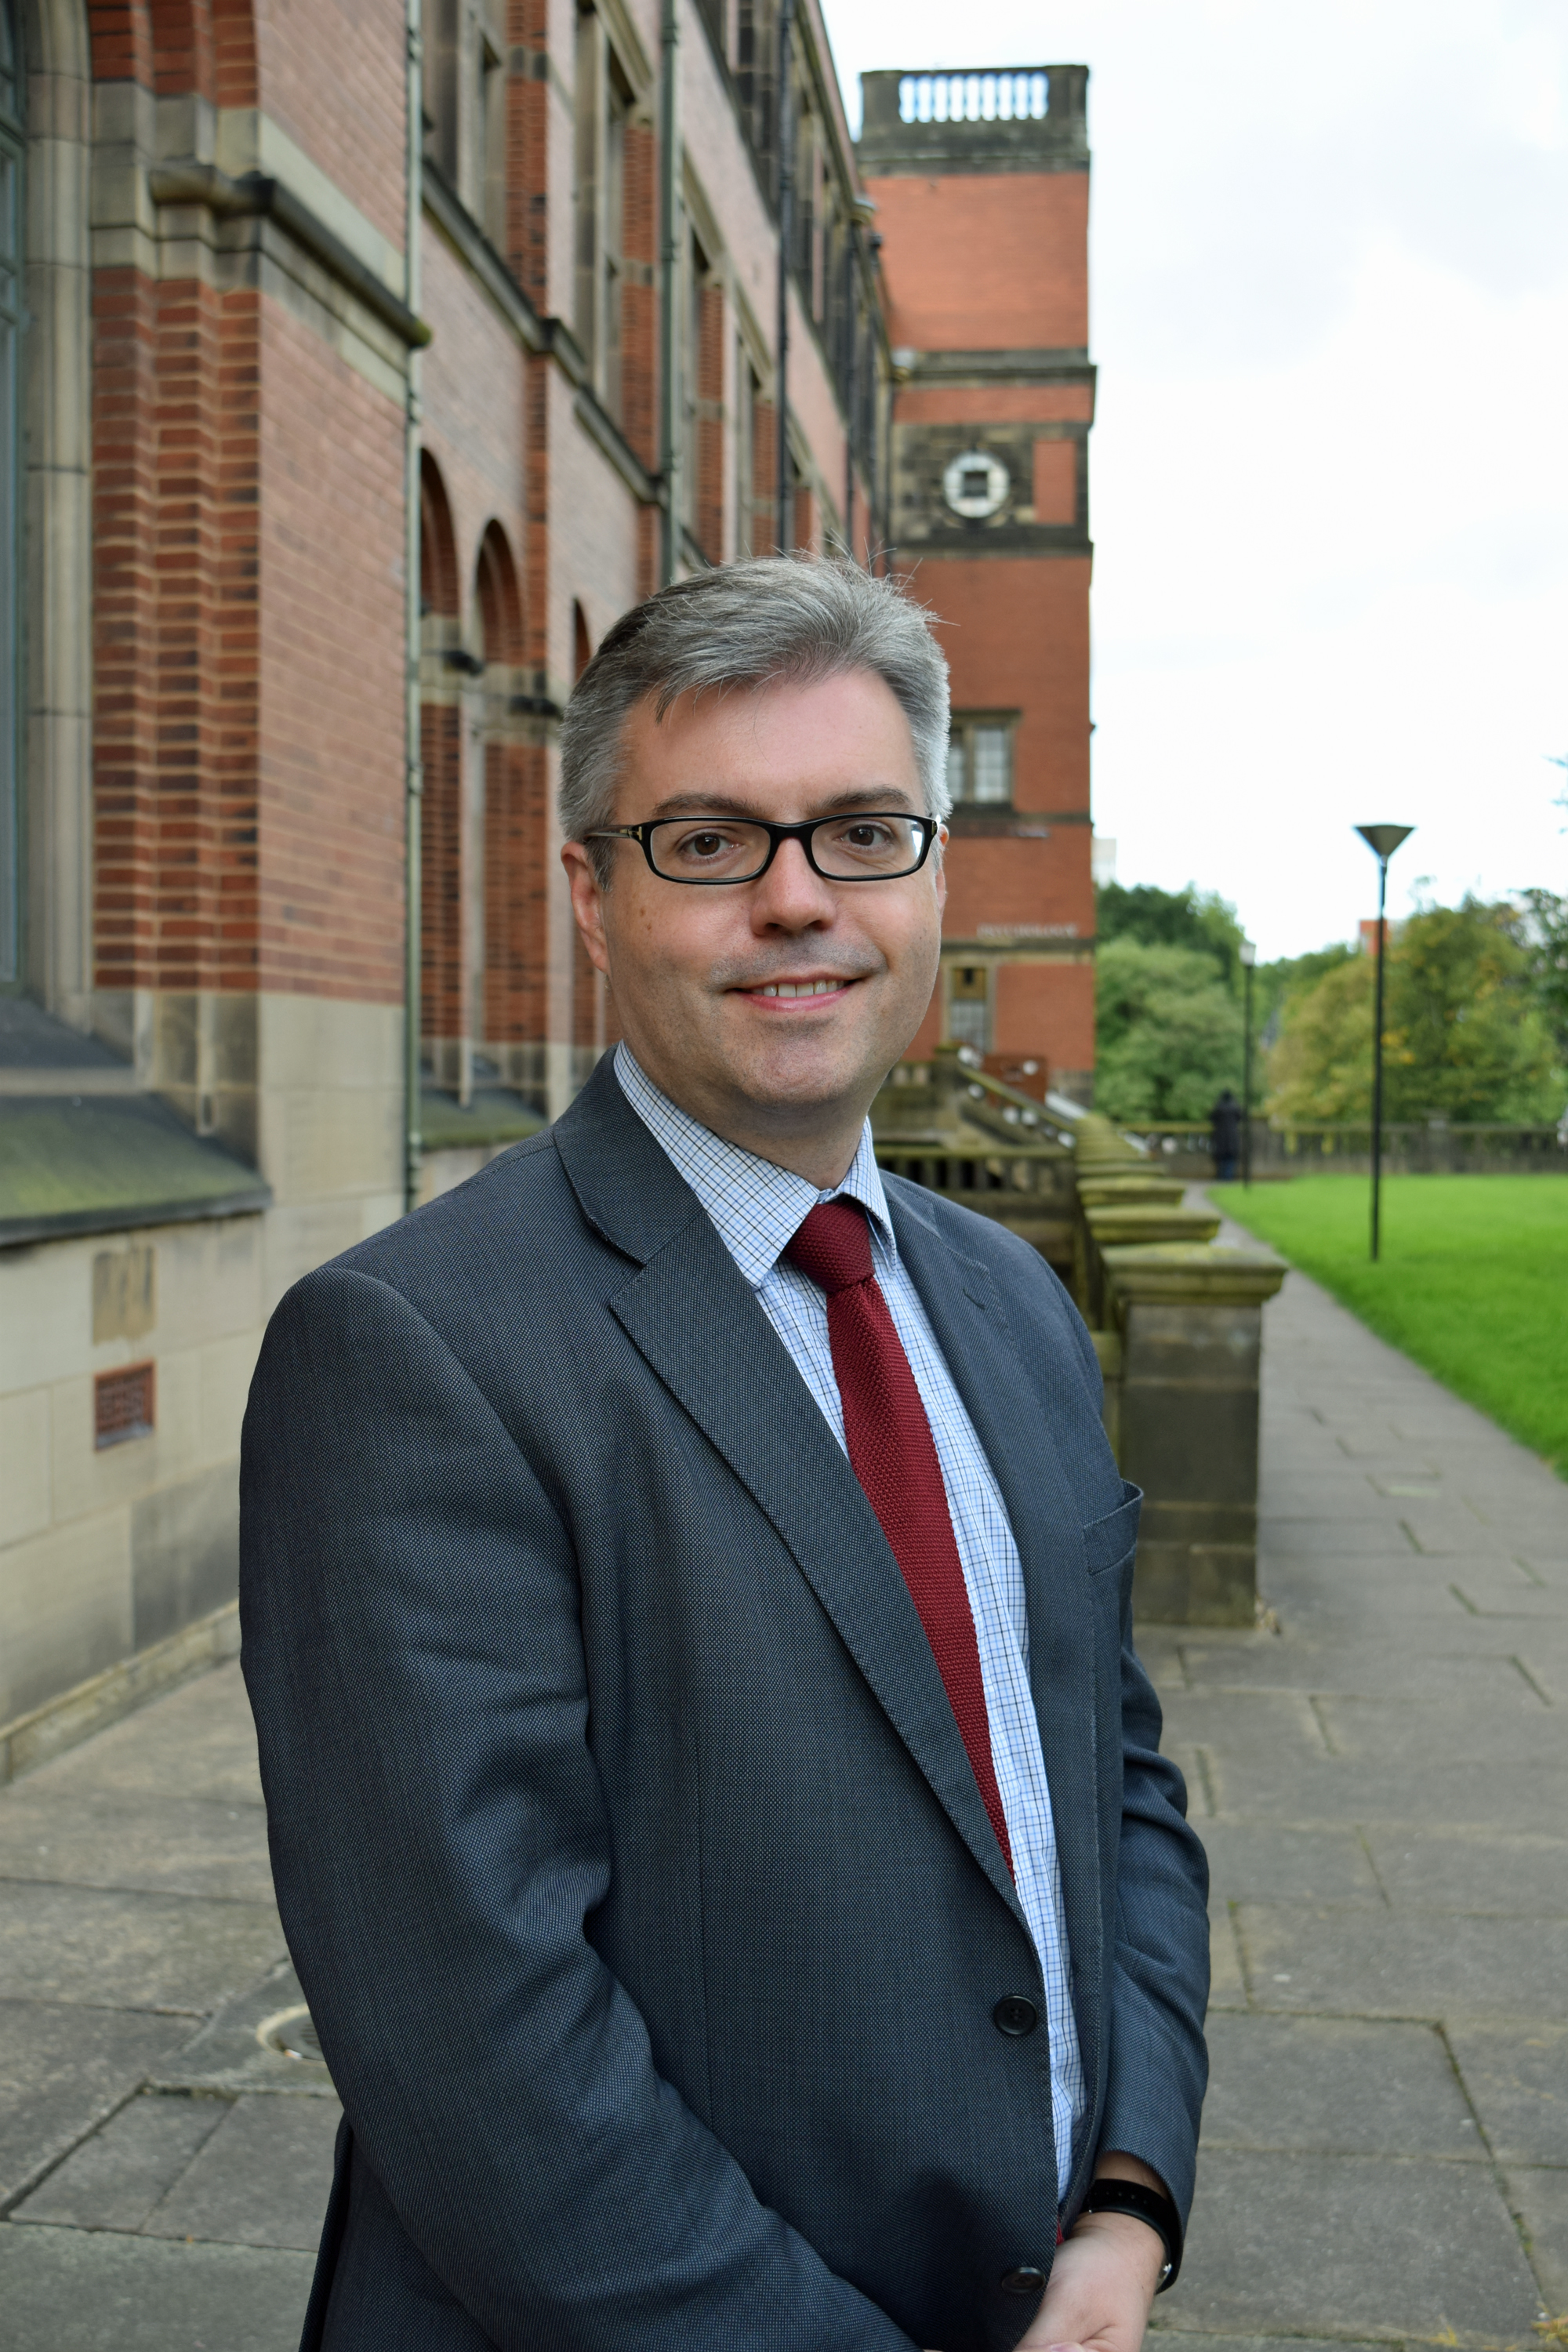 Professor Matthew Broome (MBChB Medicine, 1997), Director of the Birmingham Institute for Mental Health